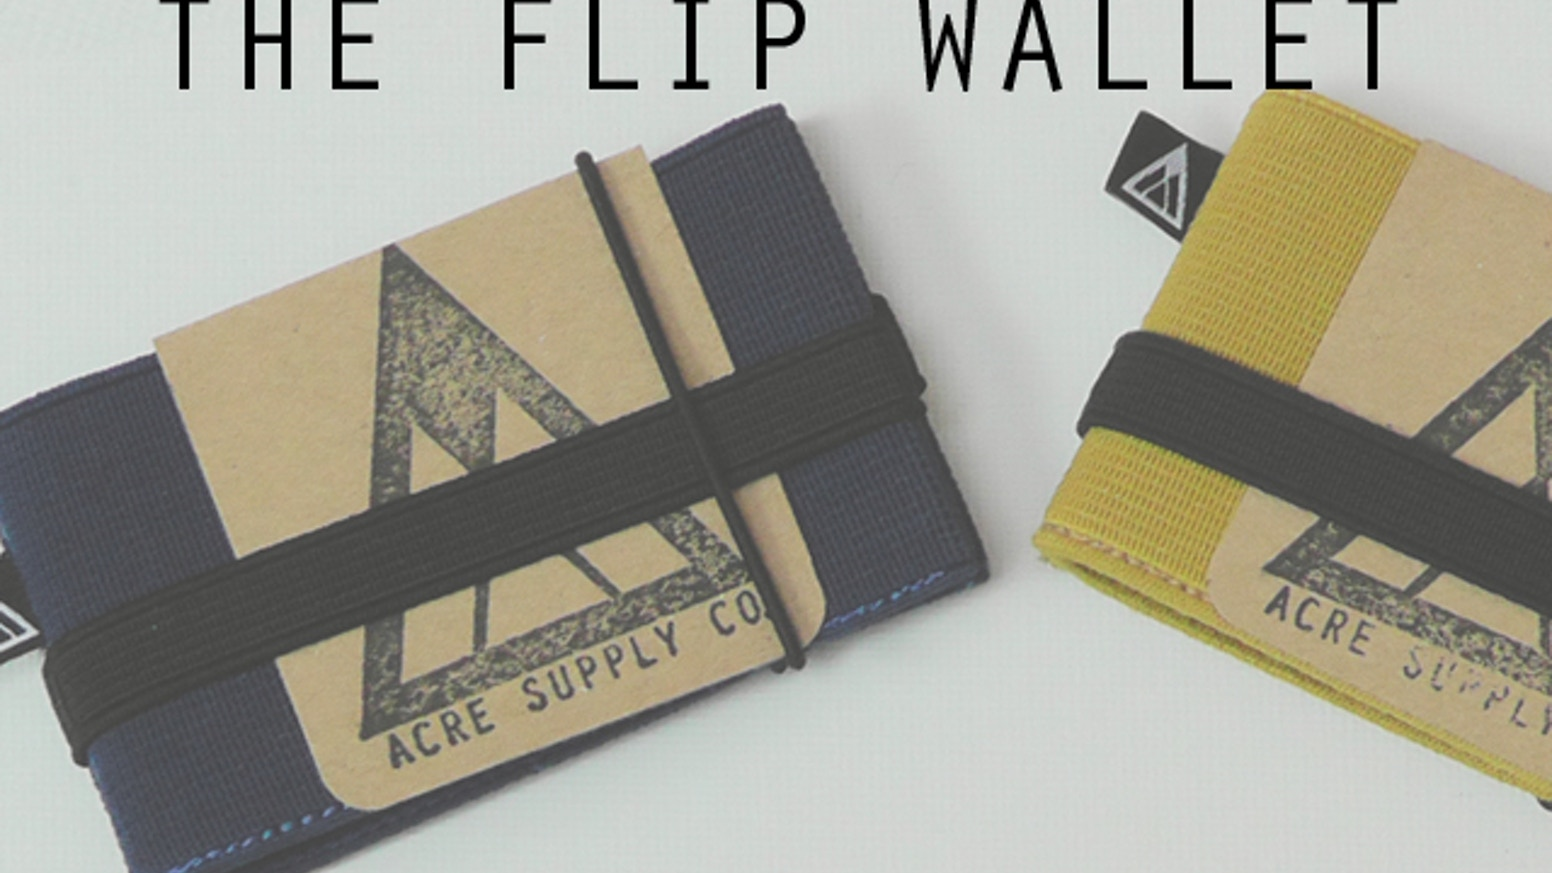 Keeping a tight grip on your cards and more all day long. Fuss free living made easy with the minimal Flip Wallet.